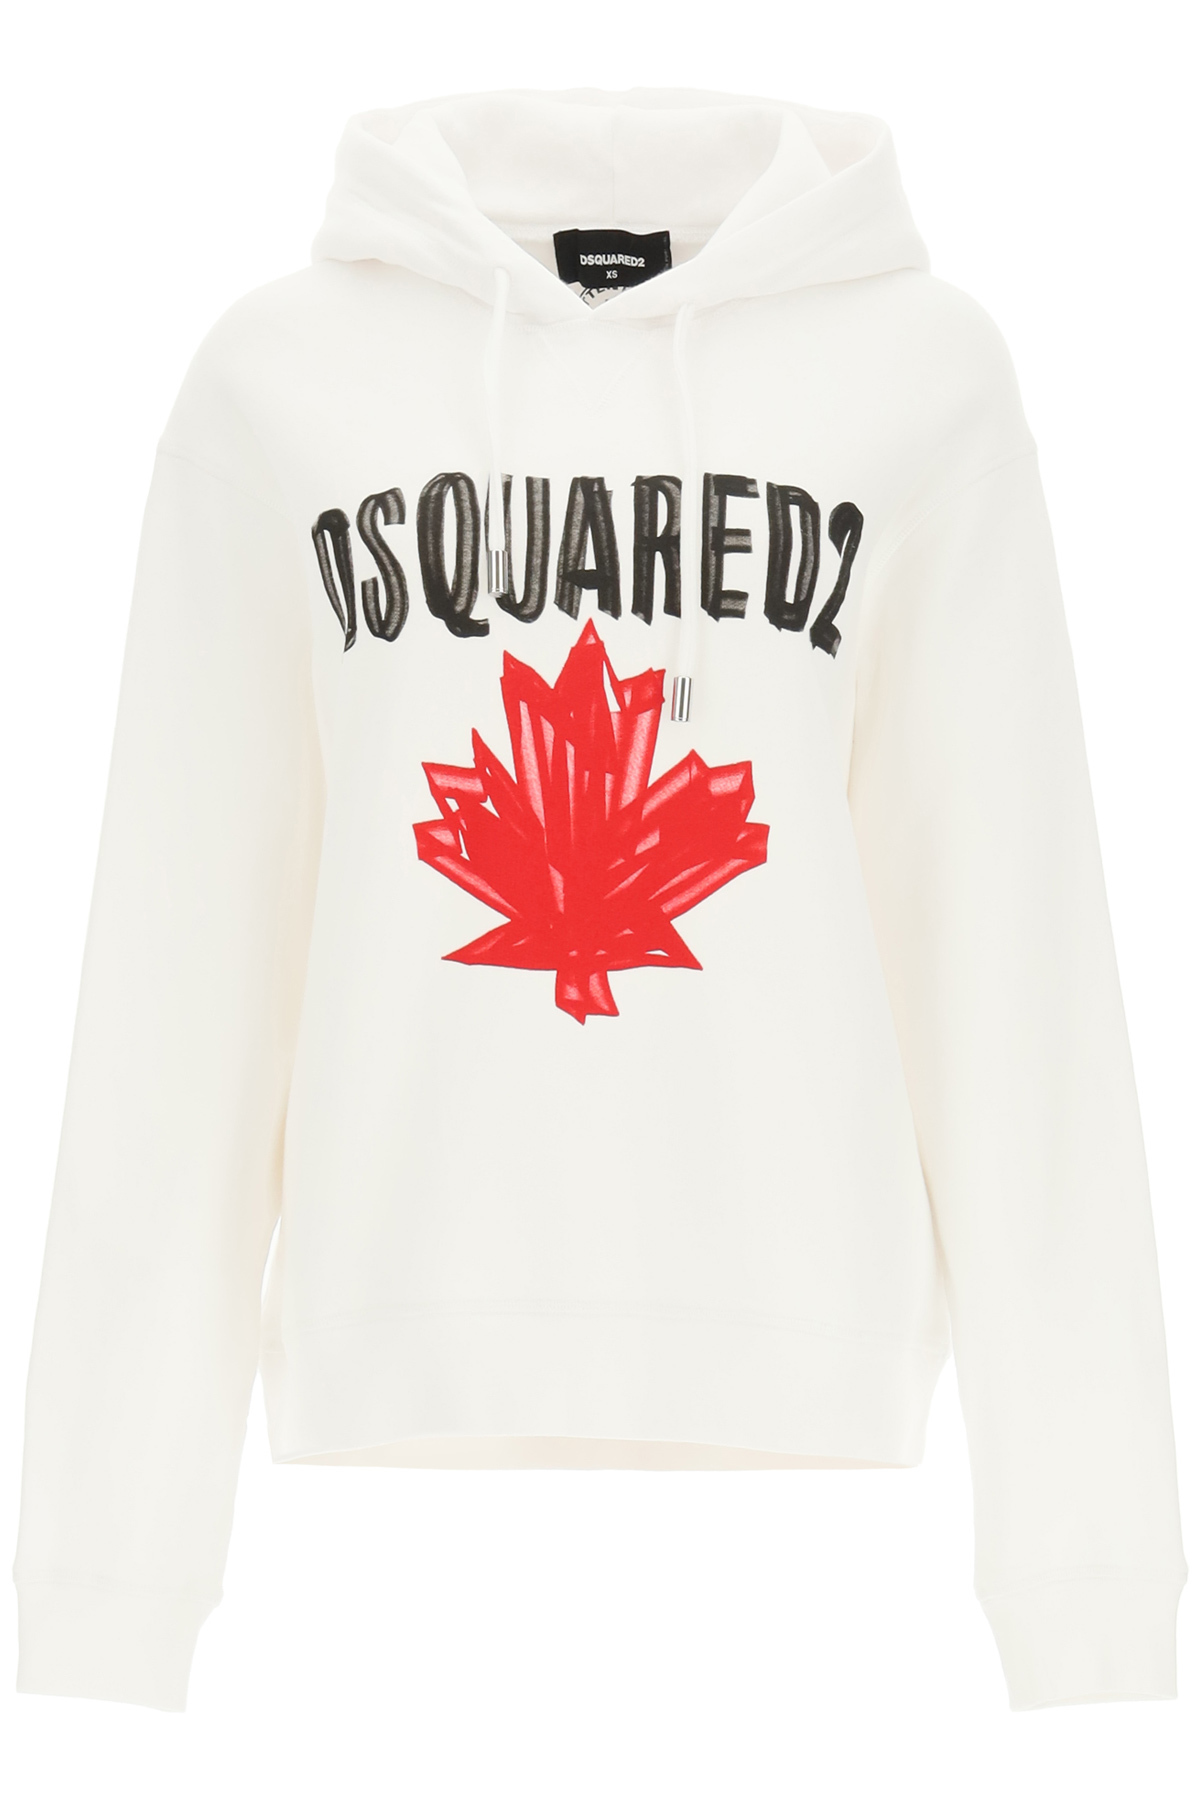 DSQUARED2 HOODIE WITH LOGO XS White, Red, Black Cotton